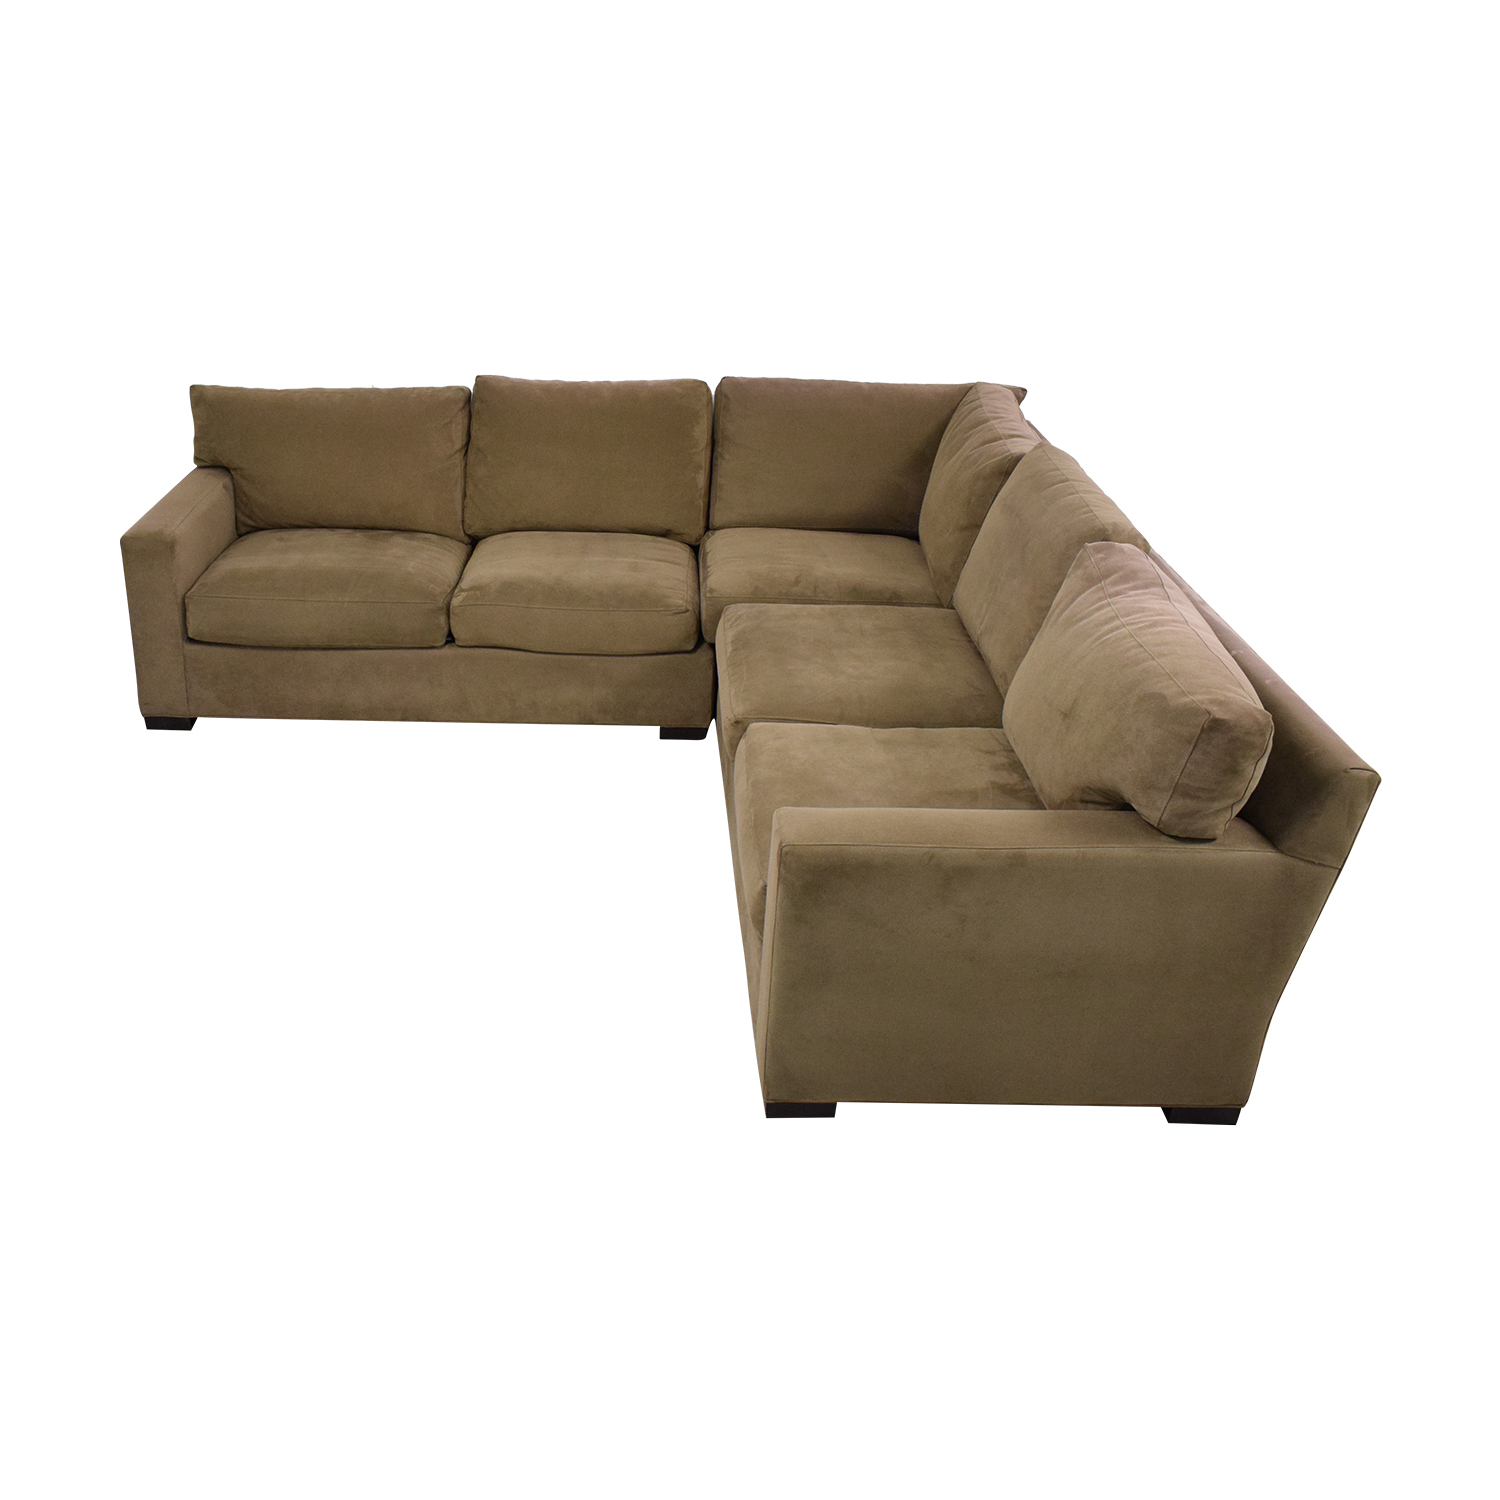 Crate & Barrel Axis II 3-Piece Sectional Sofa Crate & Barrel